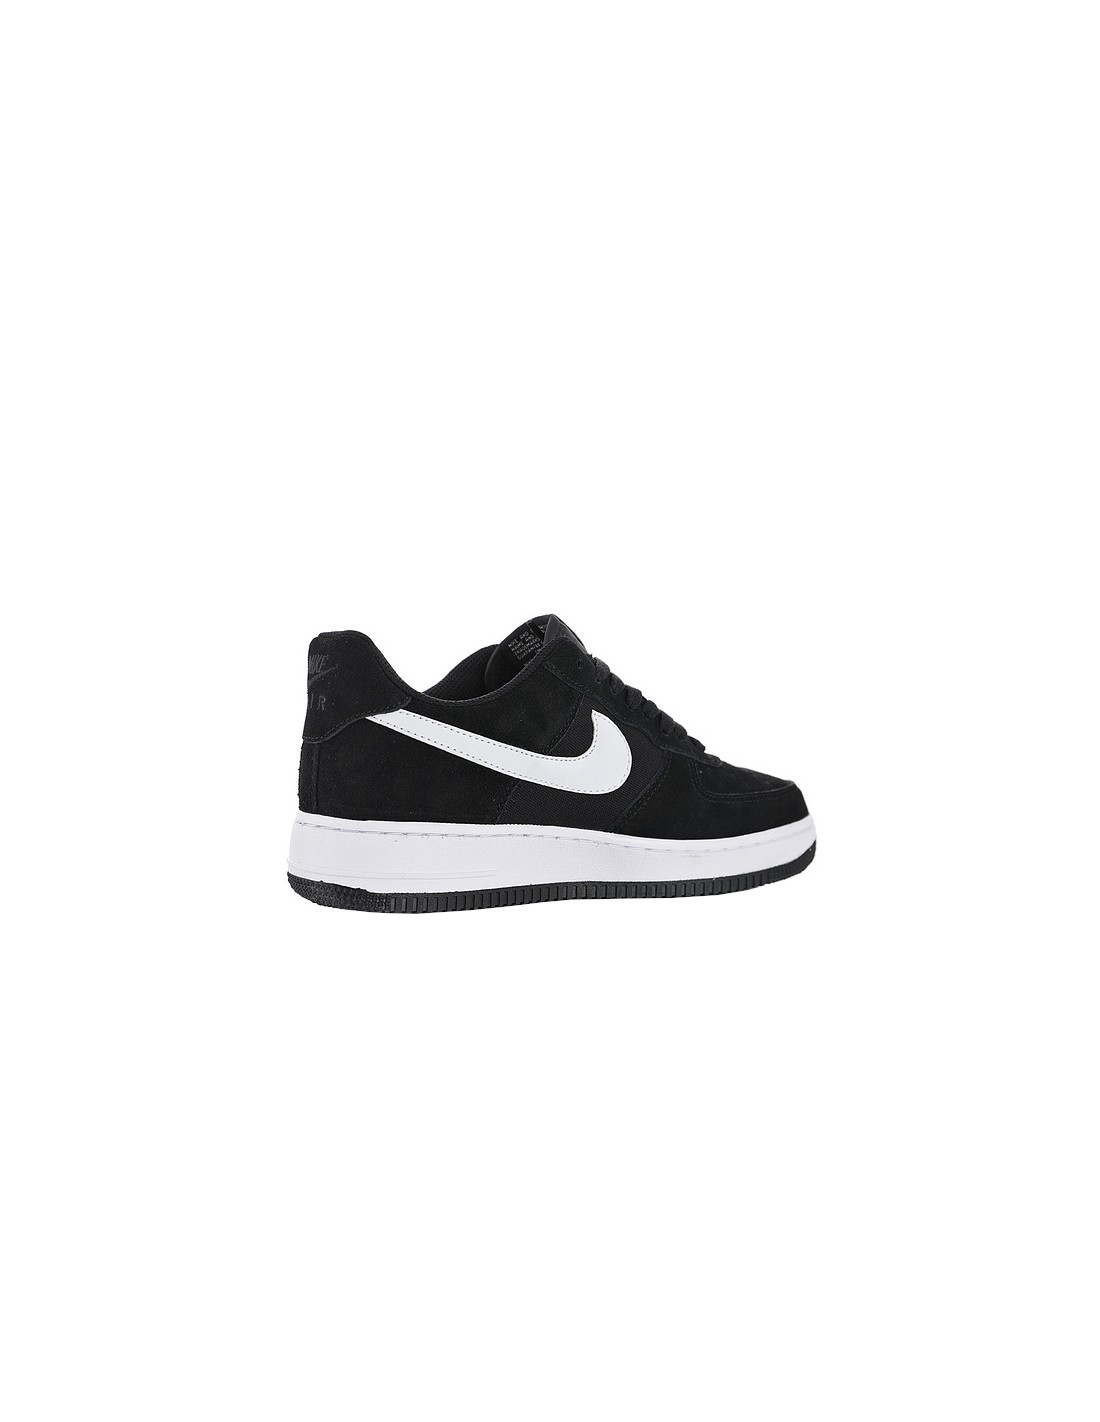 1990's Nike Air Force 1 Mens Nike Tennis or Running Shoes